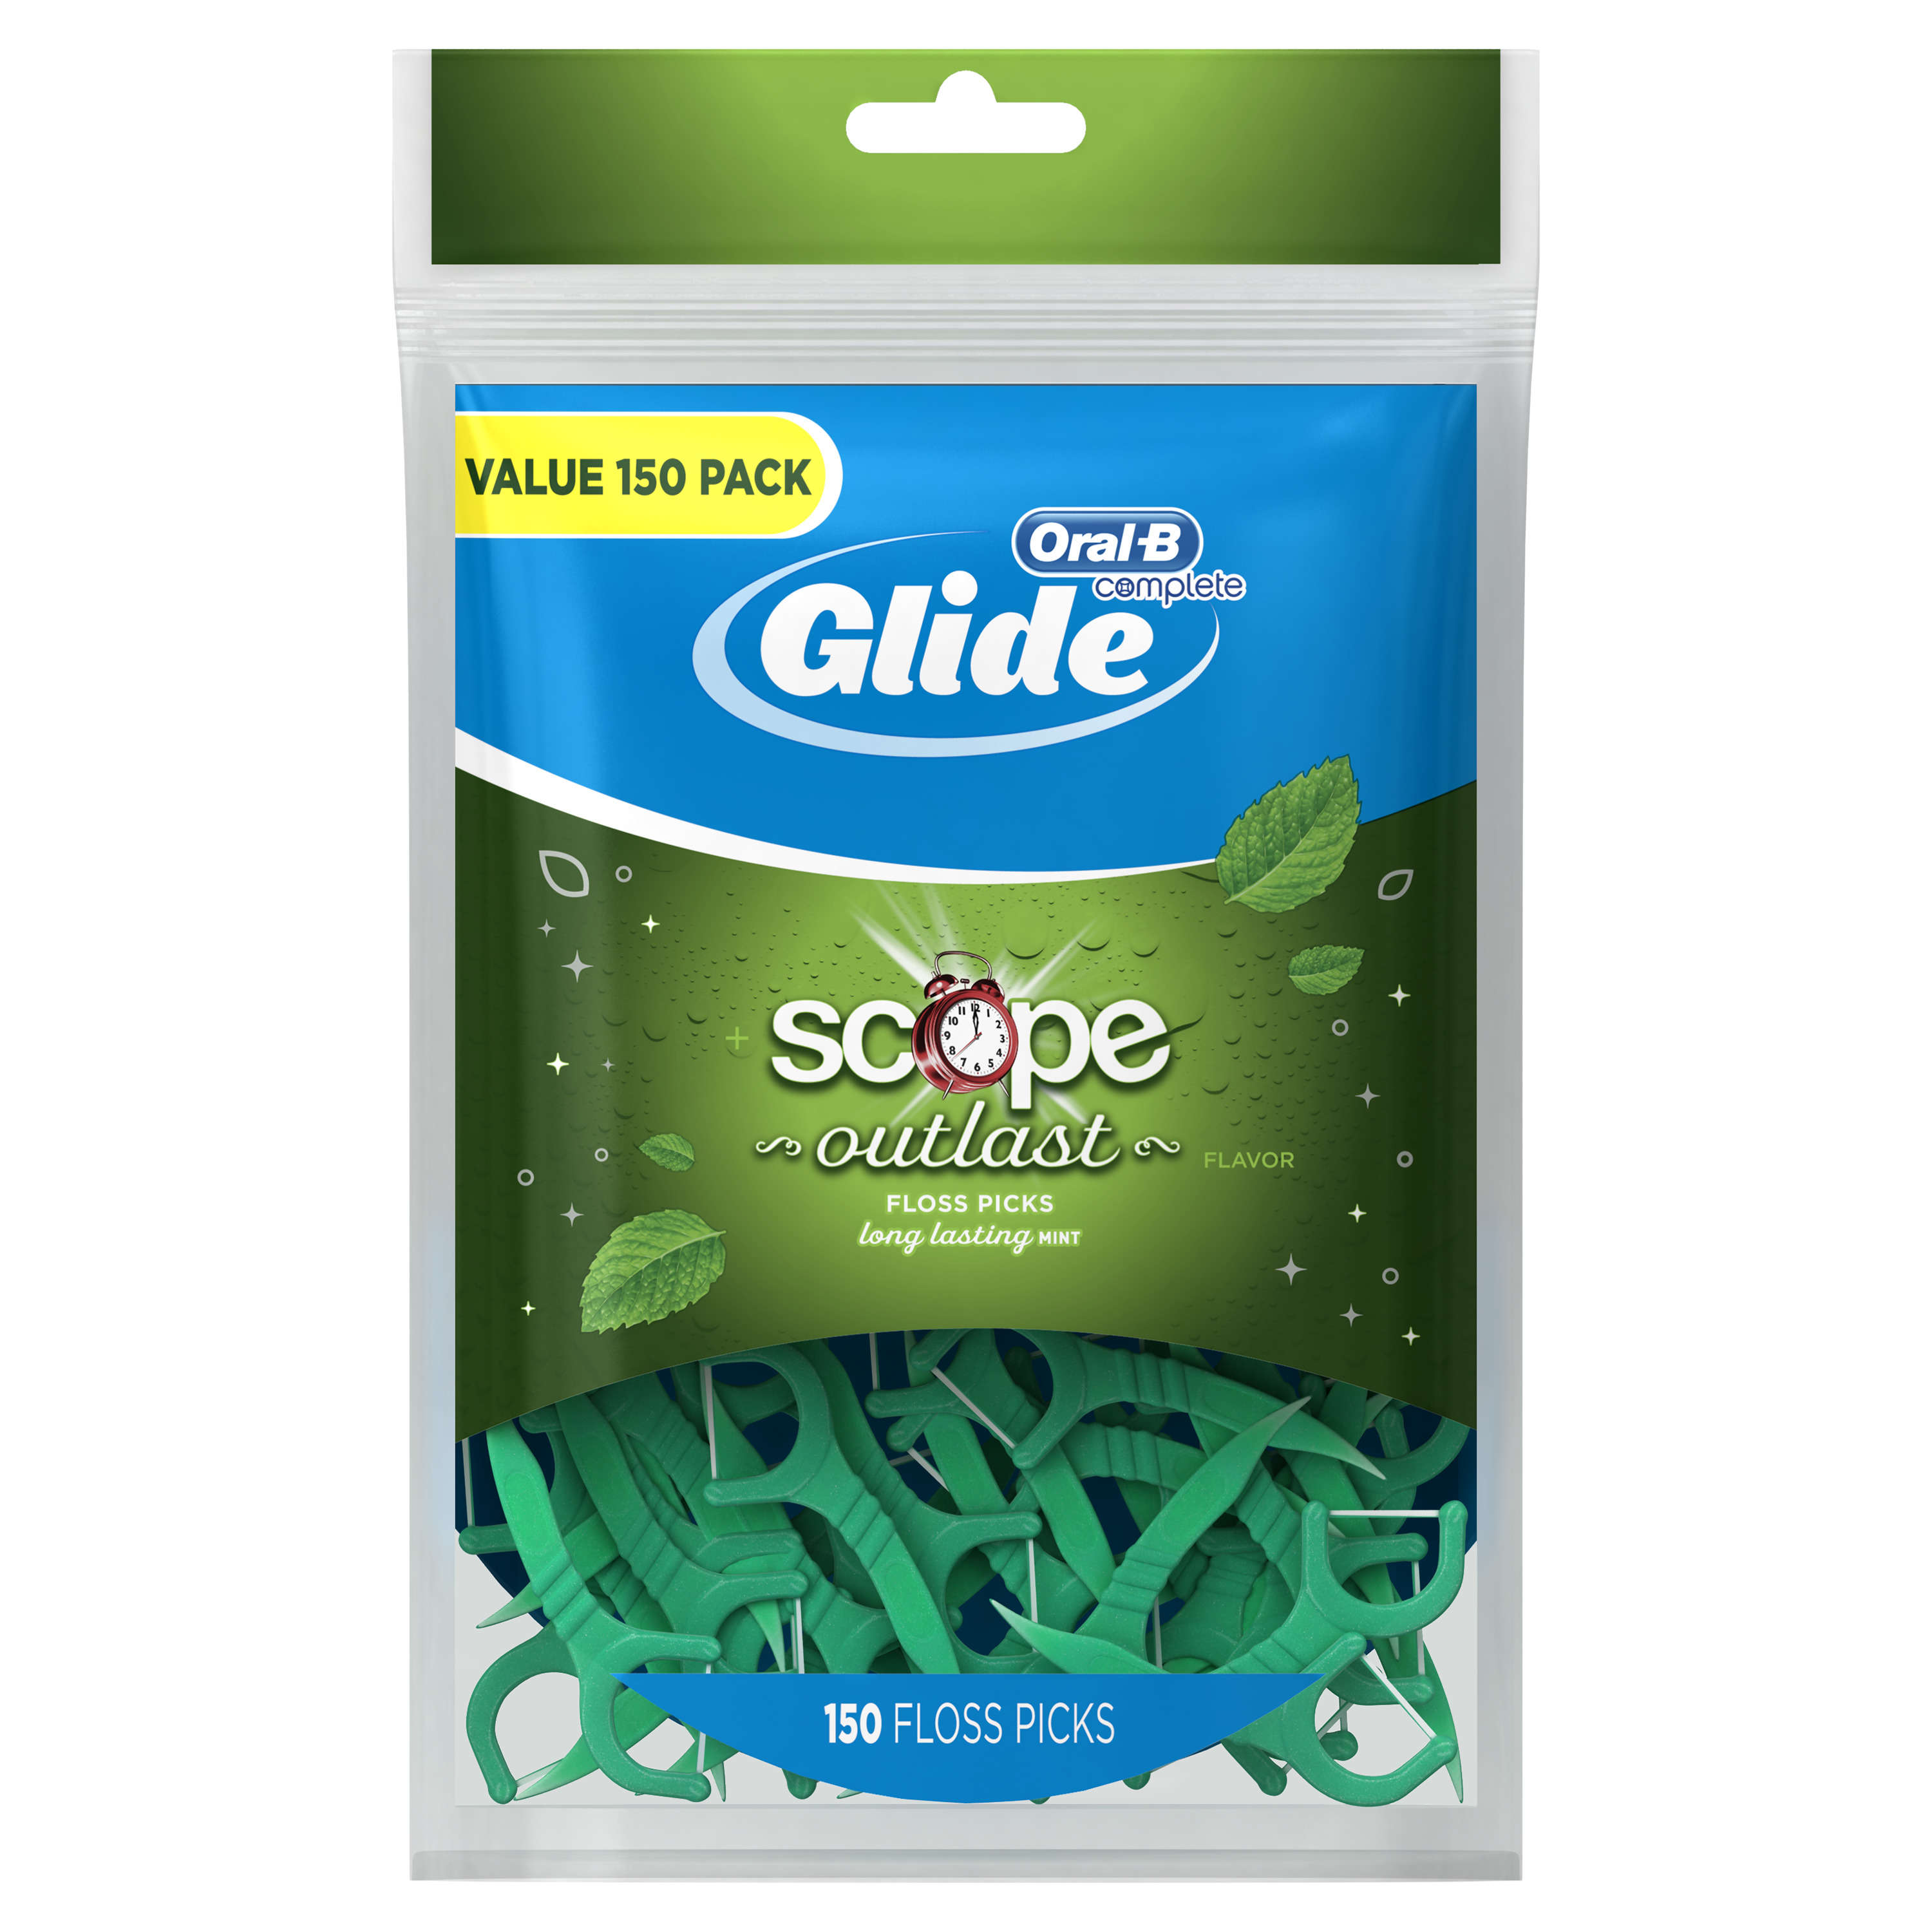 Oral-B Glide Complete with Scope Outlast Dental Floss Picks, Mint, 150 Count